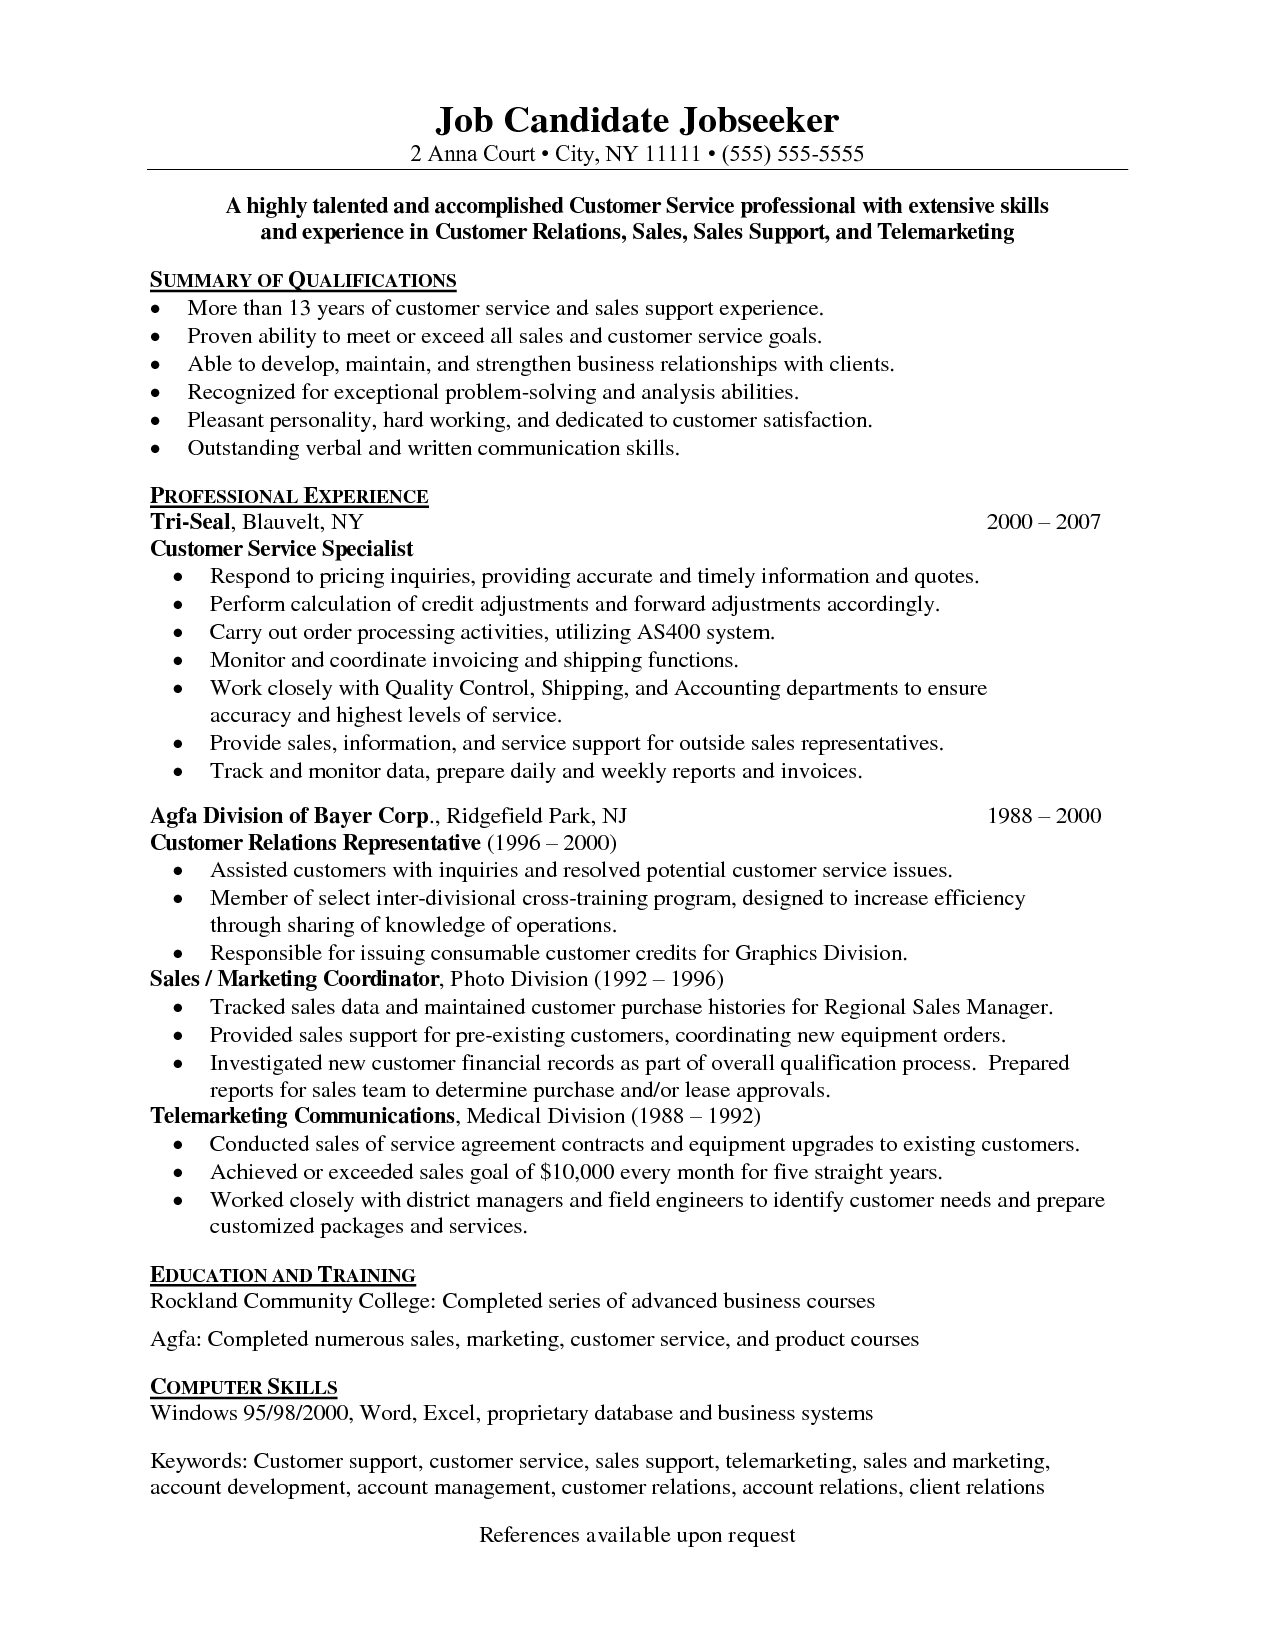 Opposenewapstandardsus  Unique Customer Service Resume Format  Roiinvestingcom With Inspiring Customer Service Resume Format  With Delectable Teach For America Resume Also Psychology Resume Sample In Addition Resume Builder For Military And Fillable Resume As Well As Resumes By Marissa Additionally Freshman In College Resume From Roiinvestingcom With Opposenewapstandardsus  Inspiring Customer Service Resume Format  Roiinvestingcom With Delectable Customer Service Resume Format  And Unique Teach For America Resume Also Psychology Resume Sample In Addition Resume Builder For Military From Roiinvestingcom